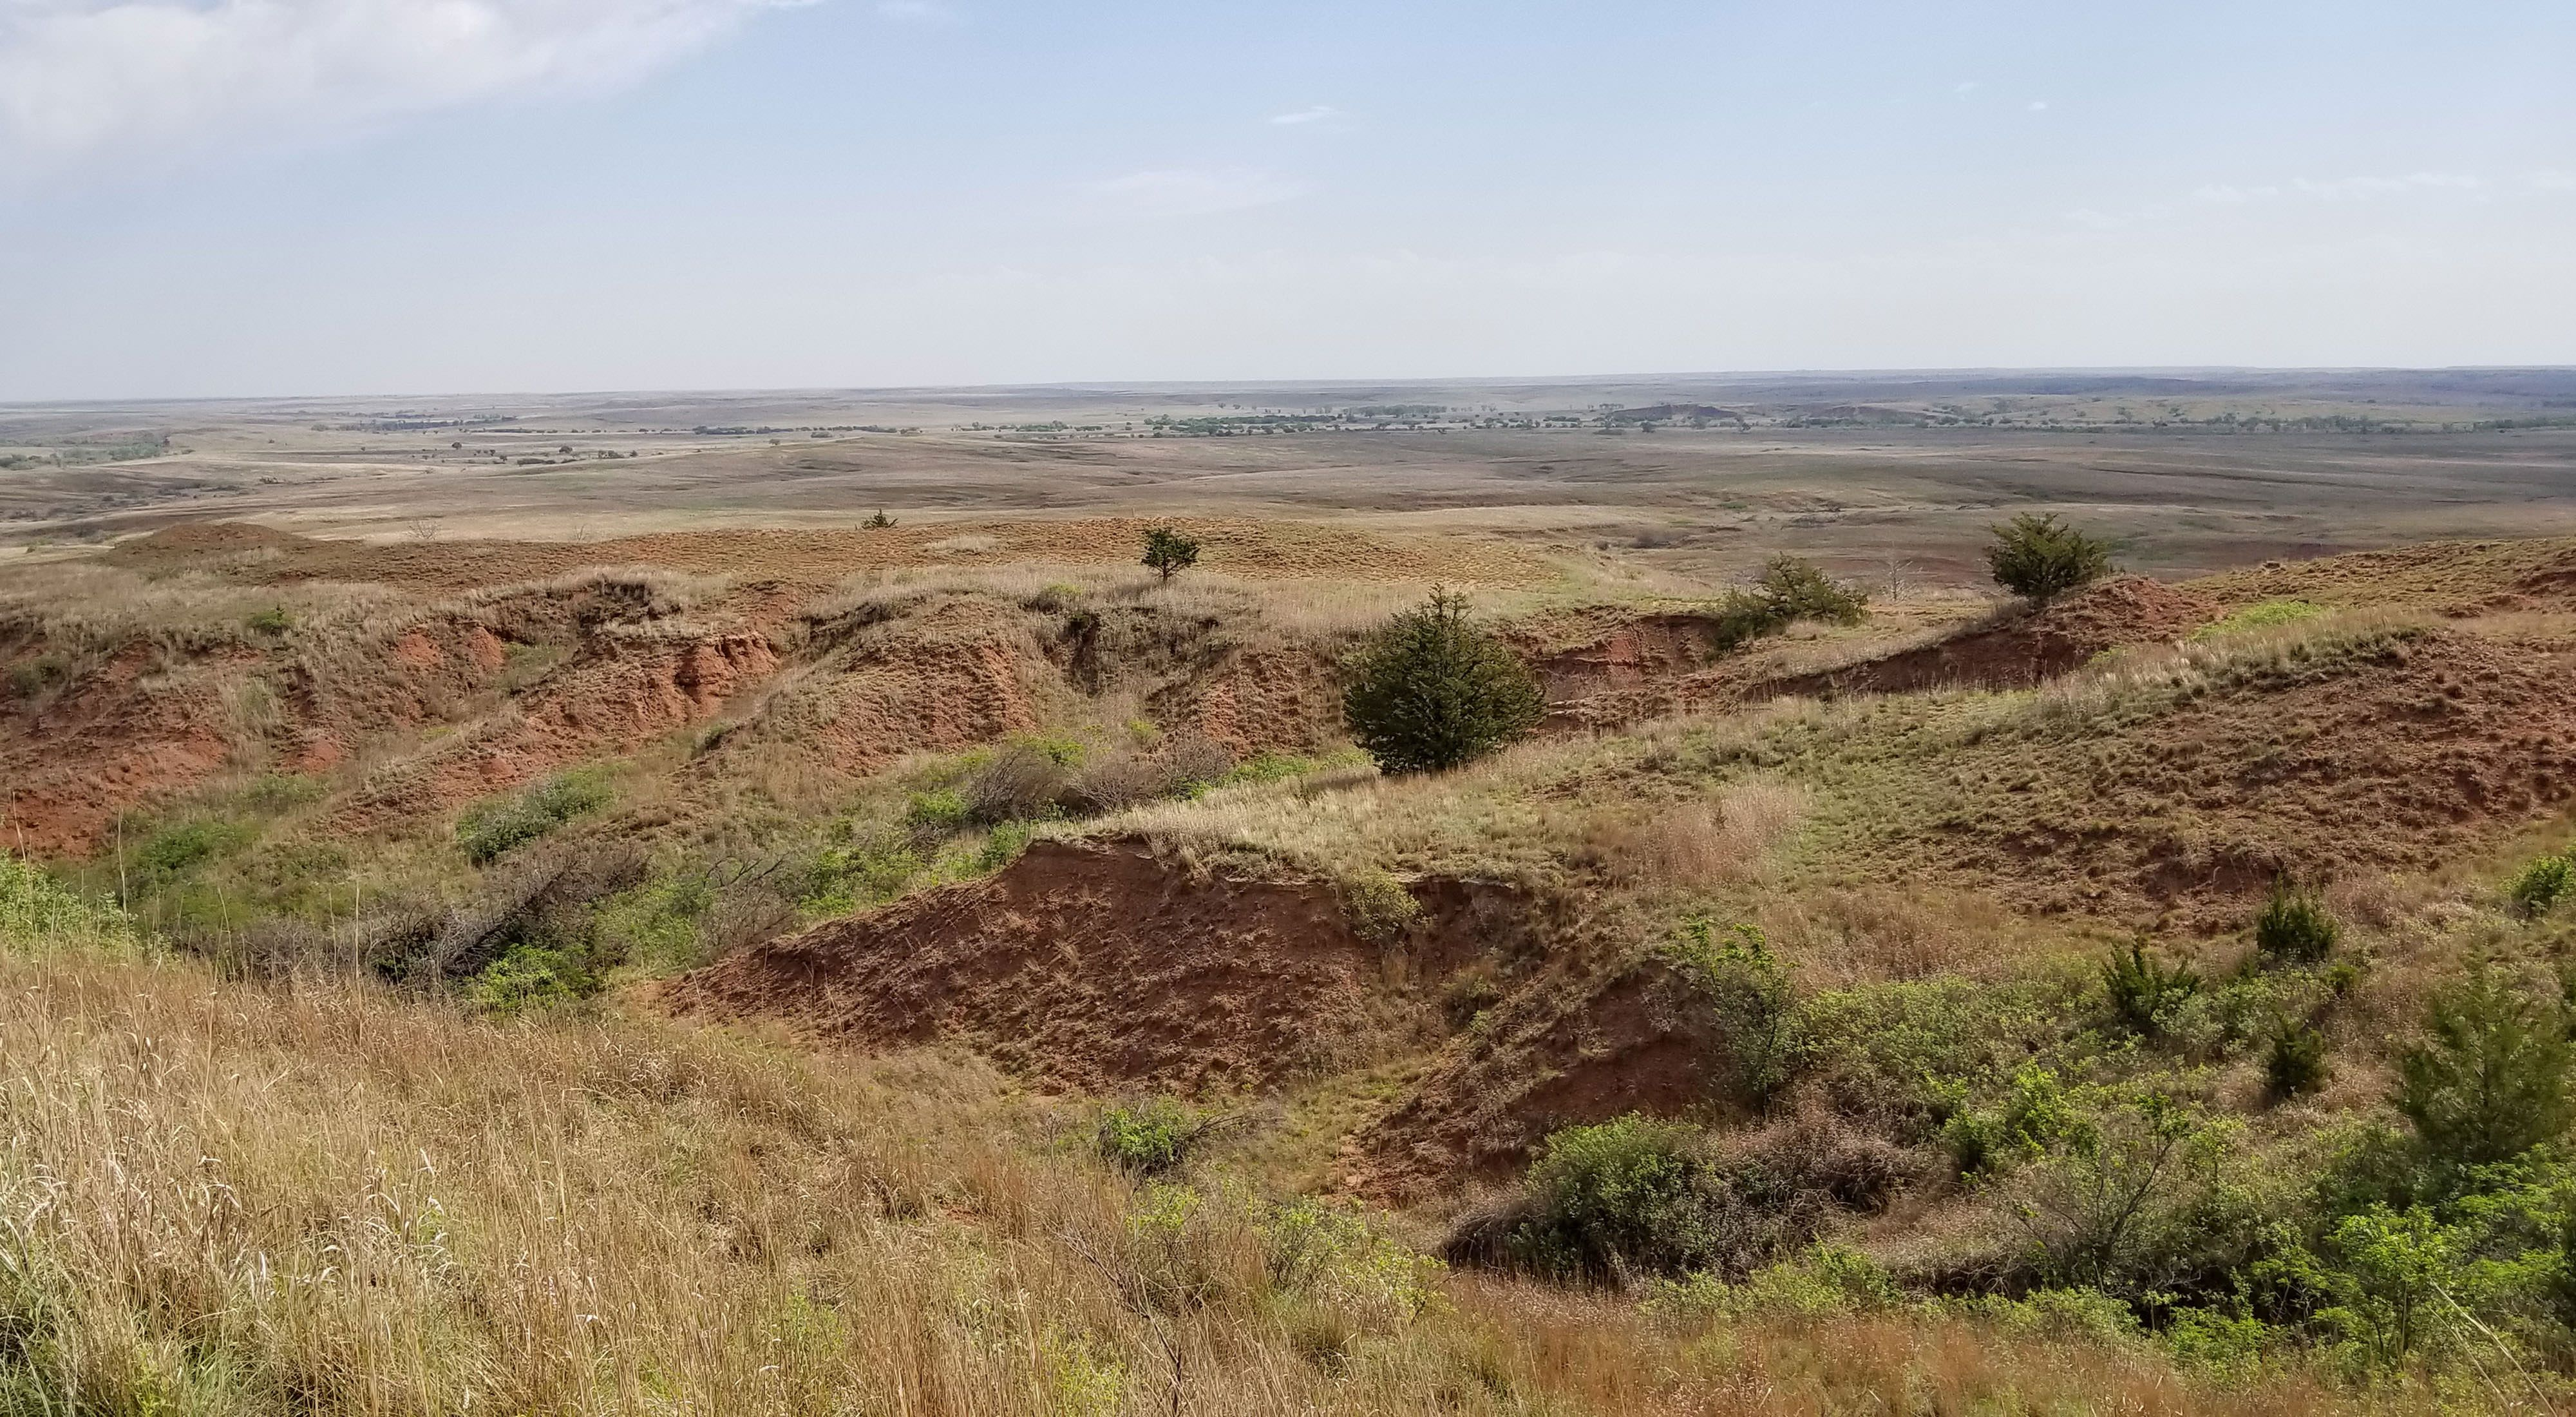 The oxidated iron in the soil gives the Red Hills their name. Also known as the Gypsum or Gyp Hills, the mixed-grass native prairie of the region extends into Oklahoma.